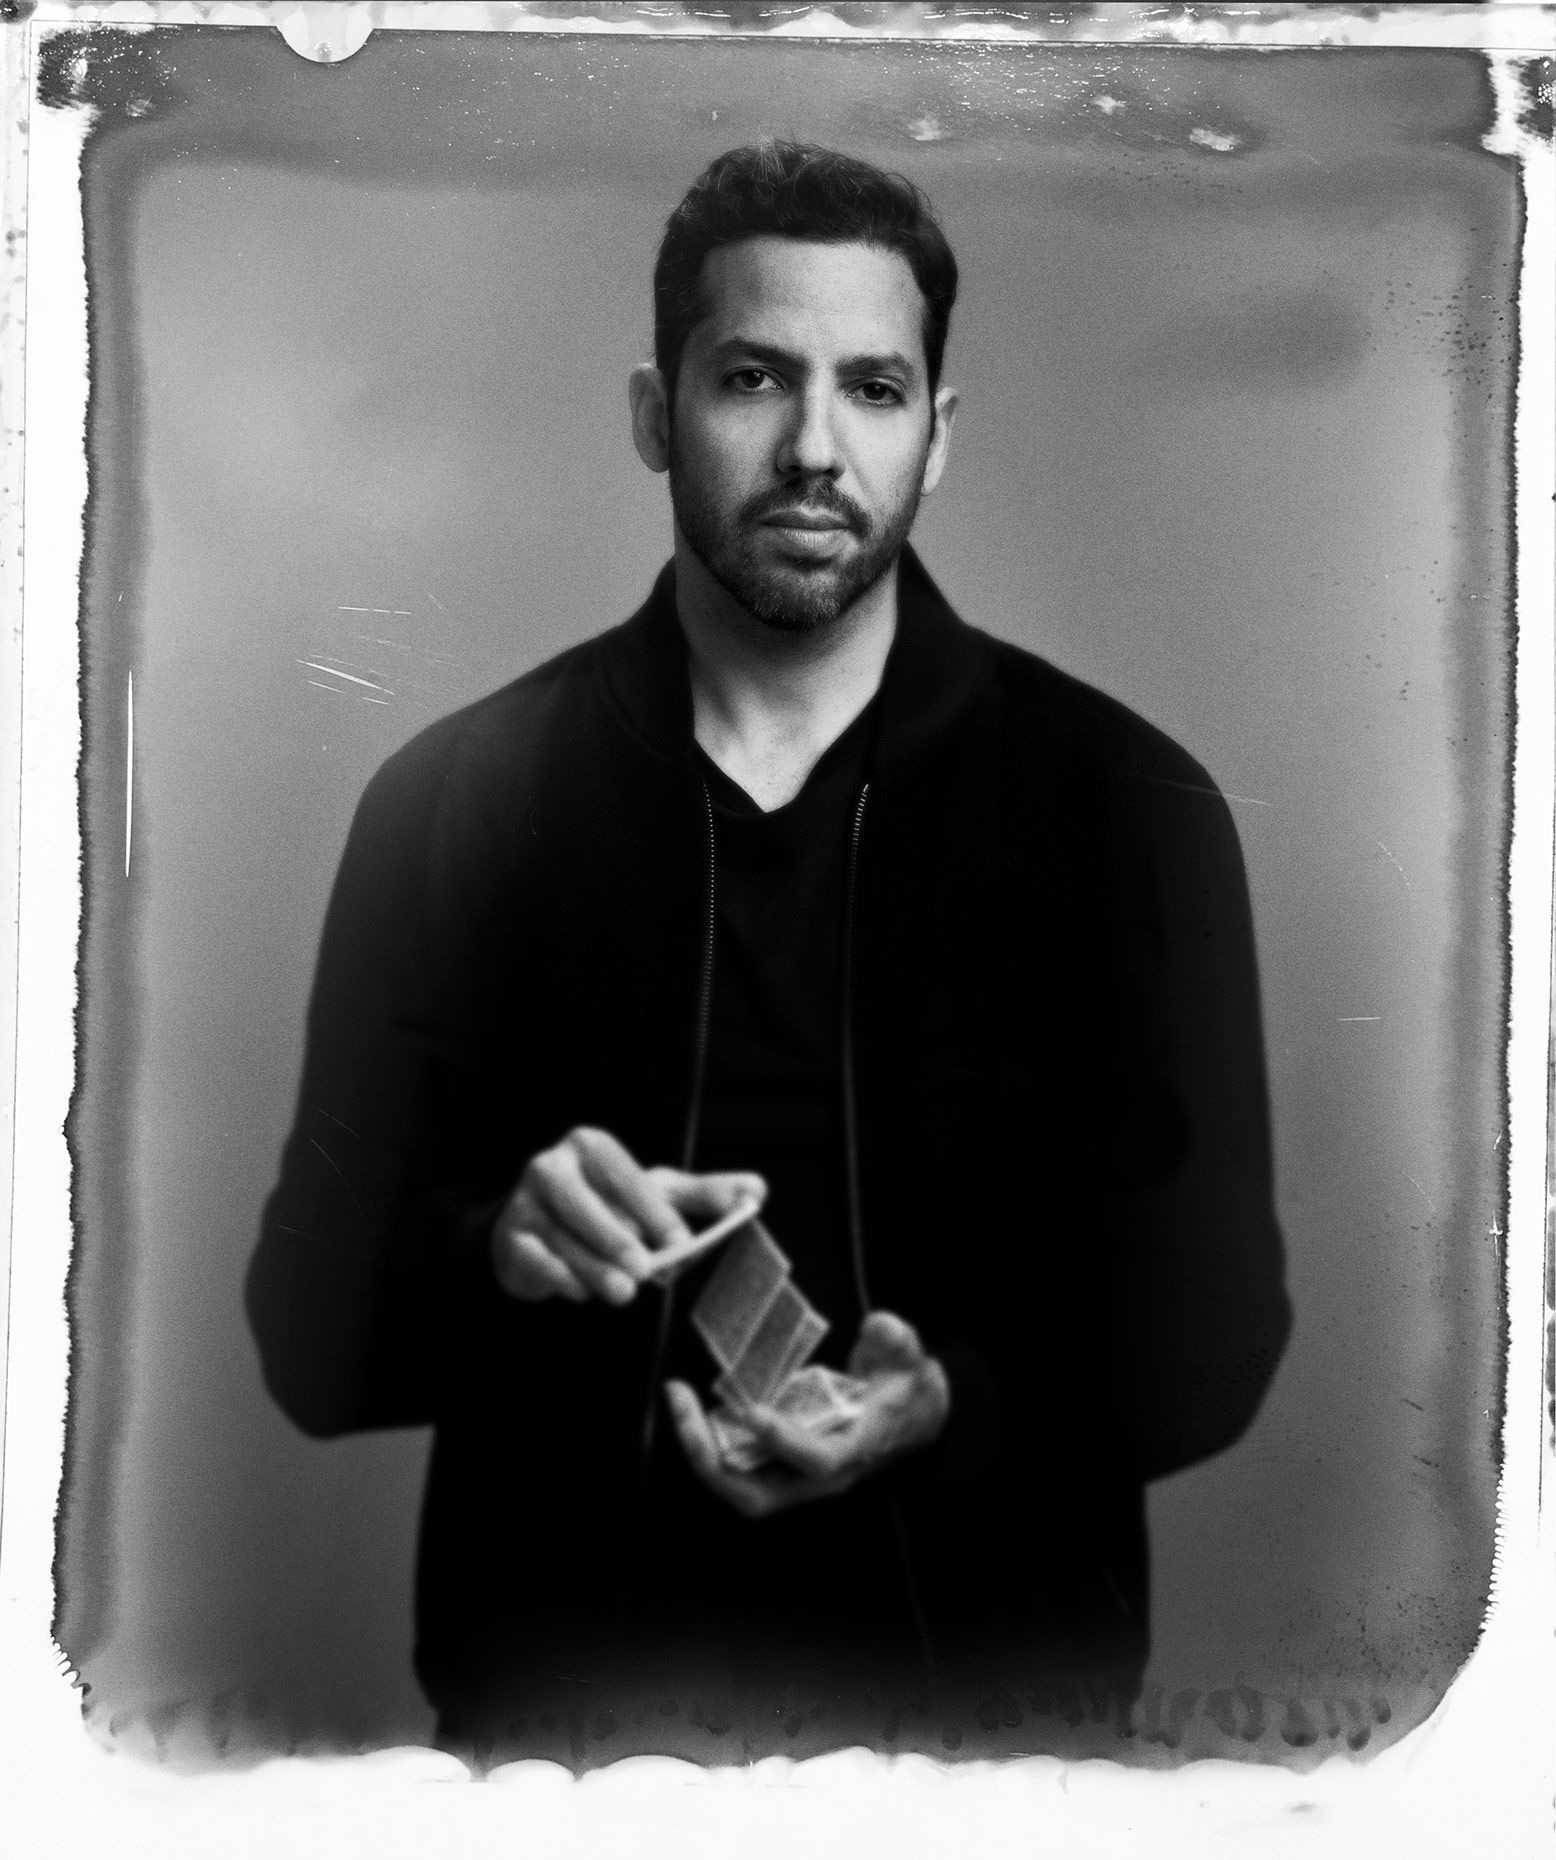 David-Blaine_New55